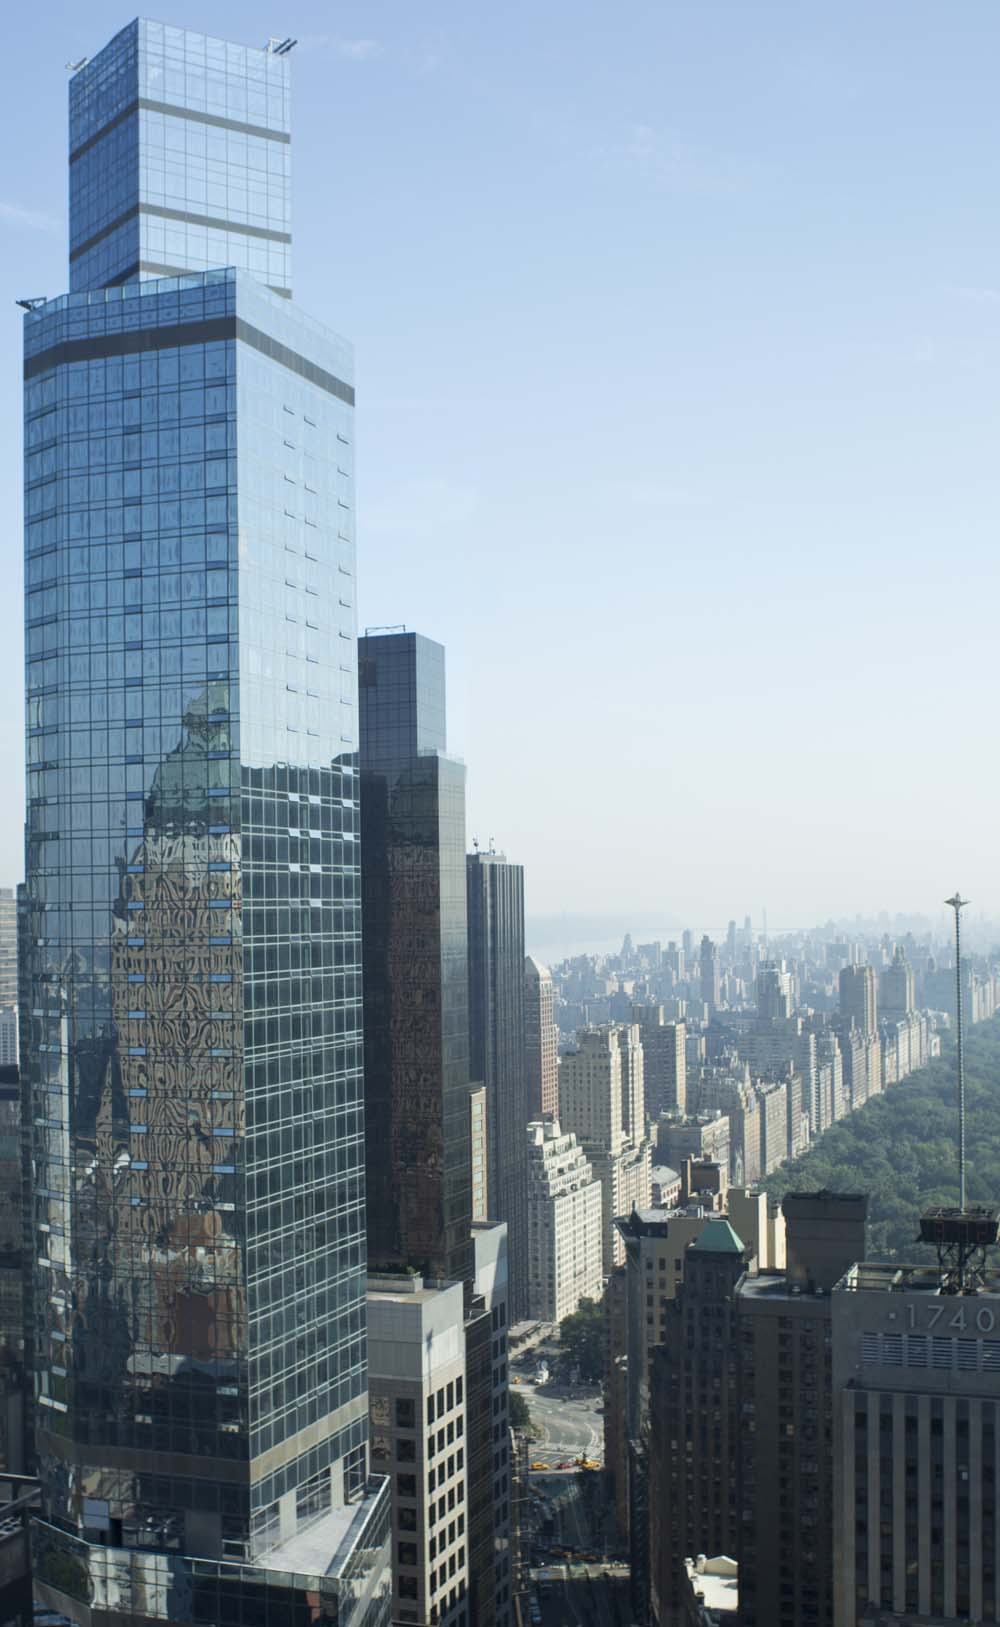 North America's tallest hotel in New York